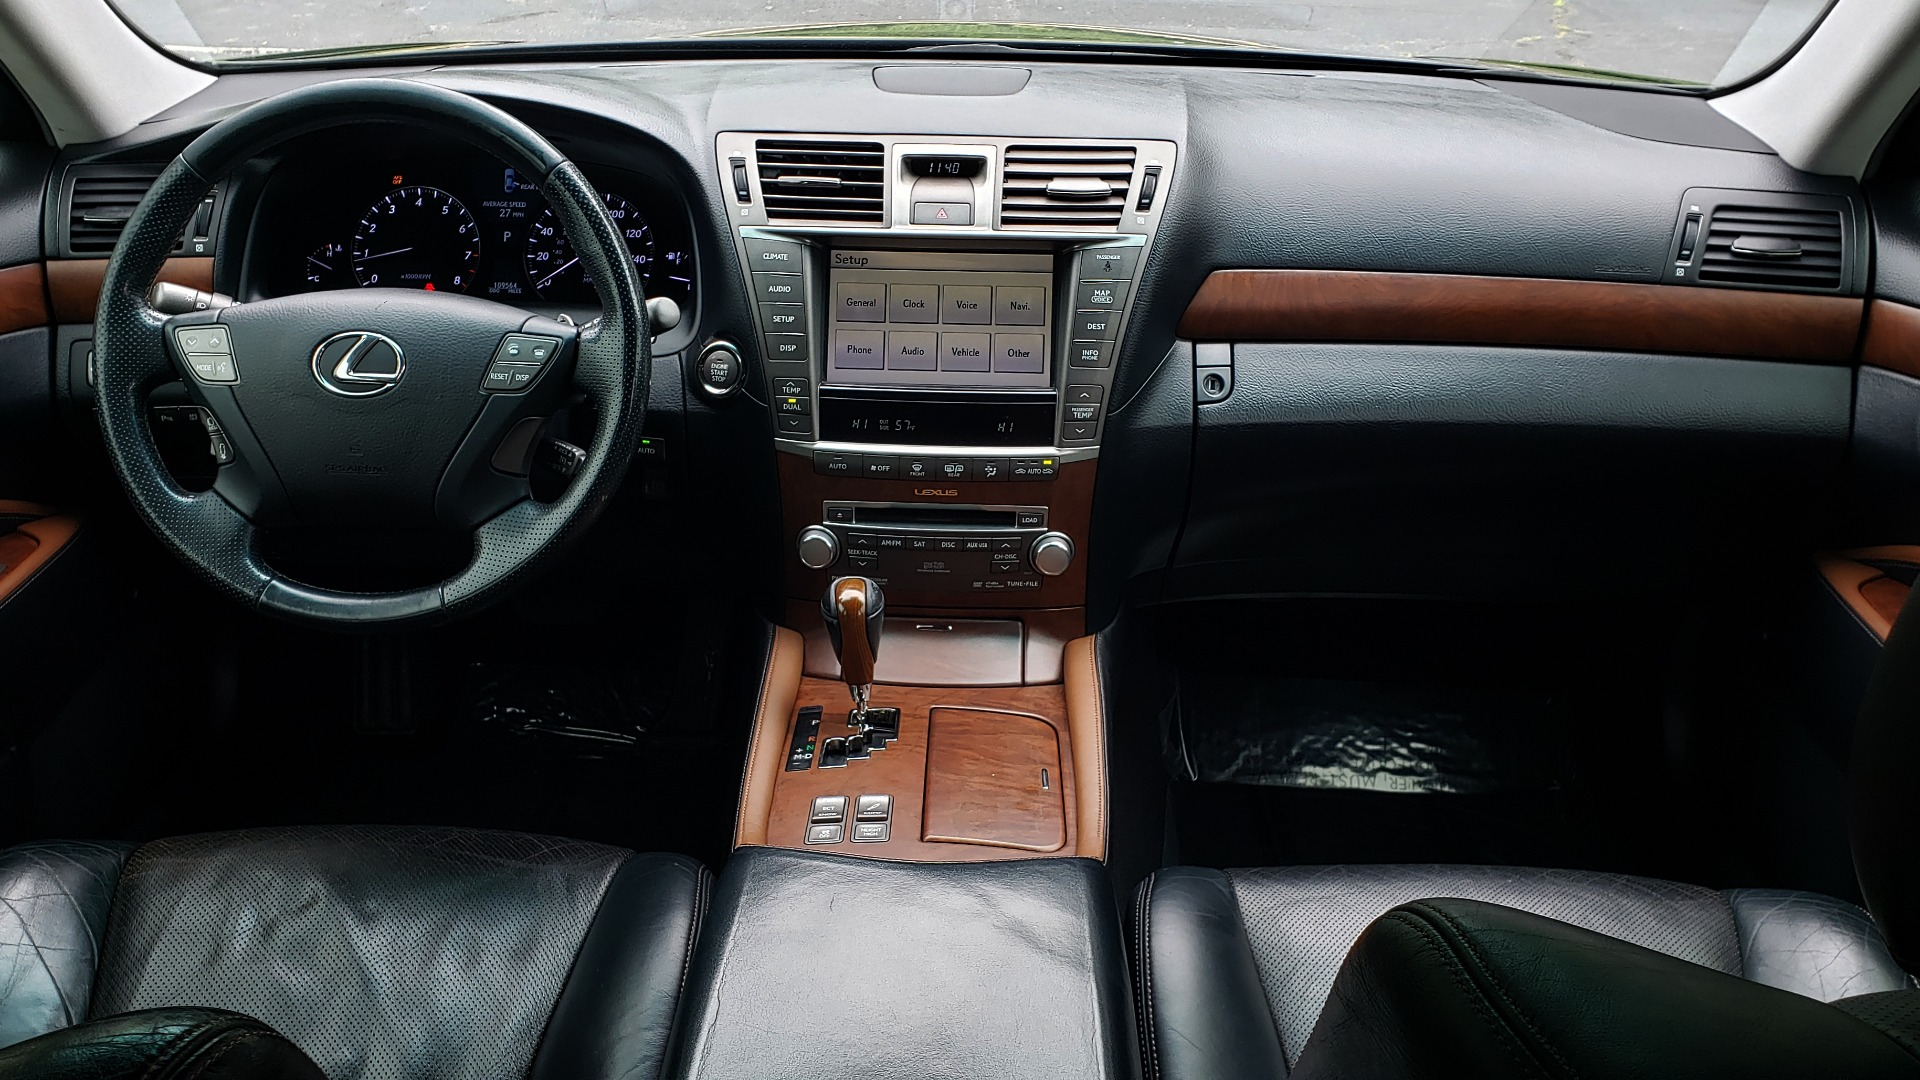 Used 2012 Lexus LS 460 COMFORT W/SPORT / VENT SEATS / NAV / MARK LEV SND / SUNROOF for sale Sold at Formula Imports in Charlotte NC 28227 85